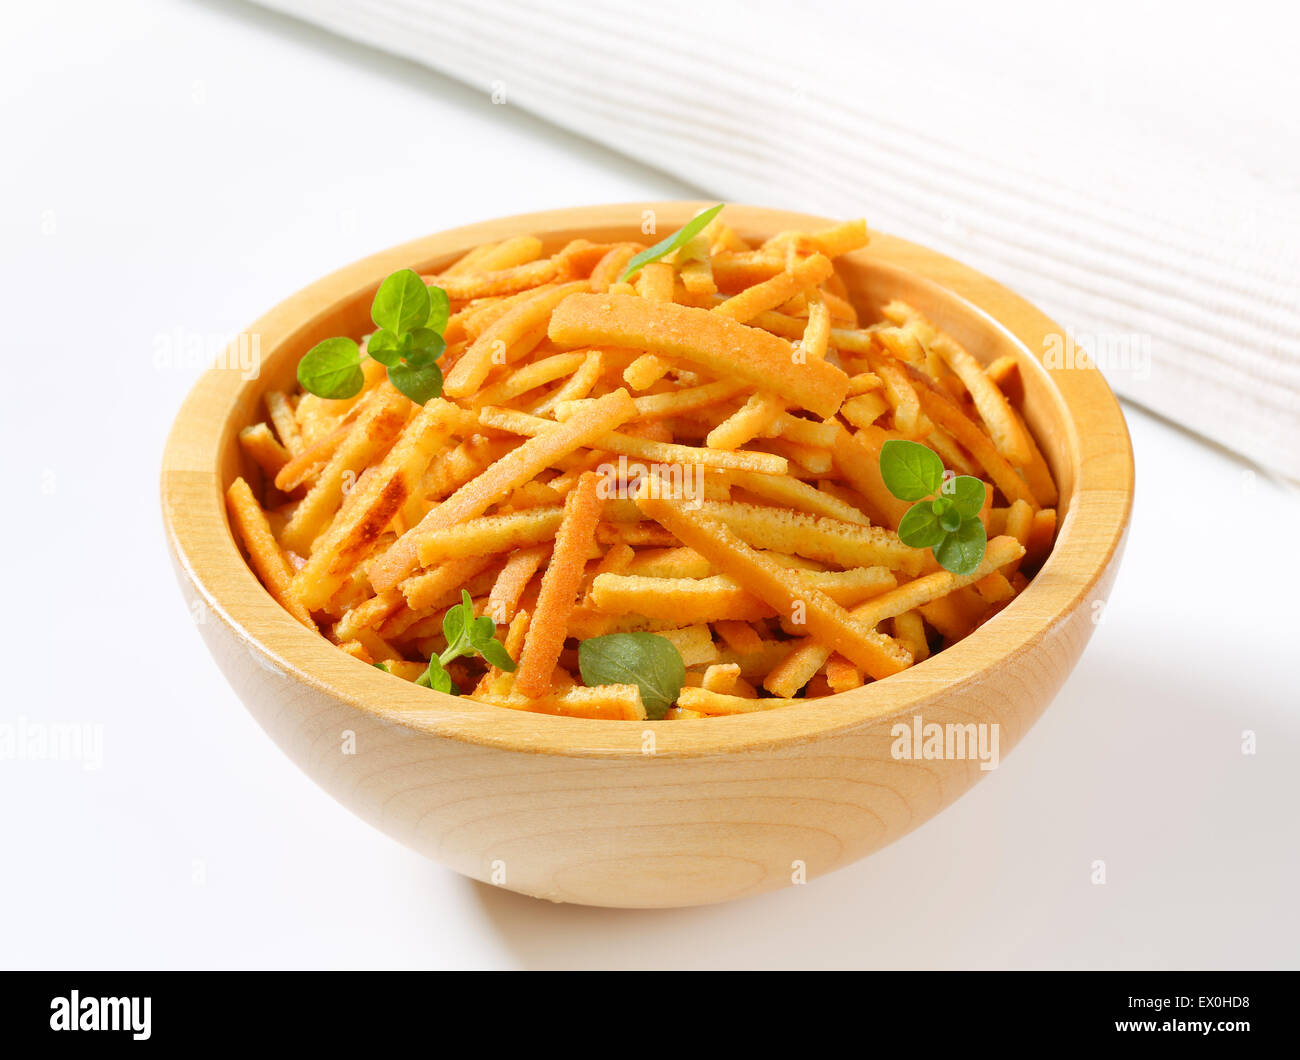 Pancake strips in a wooden bowl - Stock Image